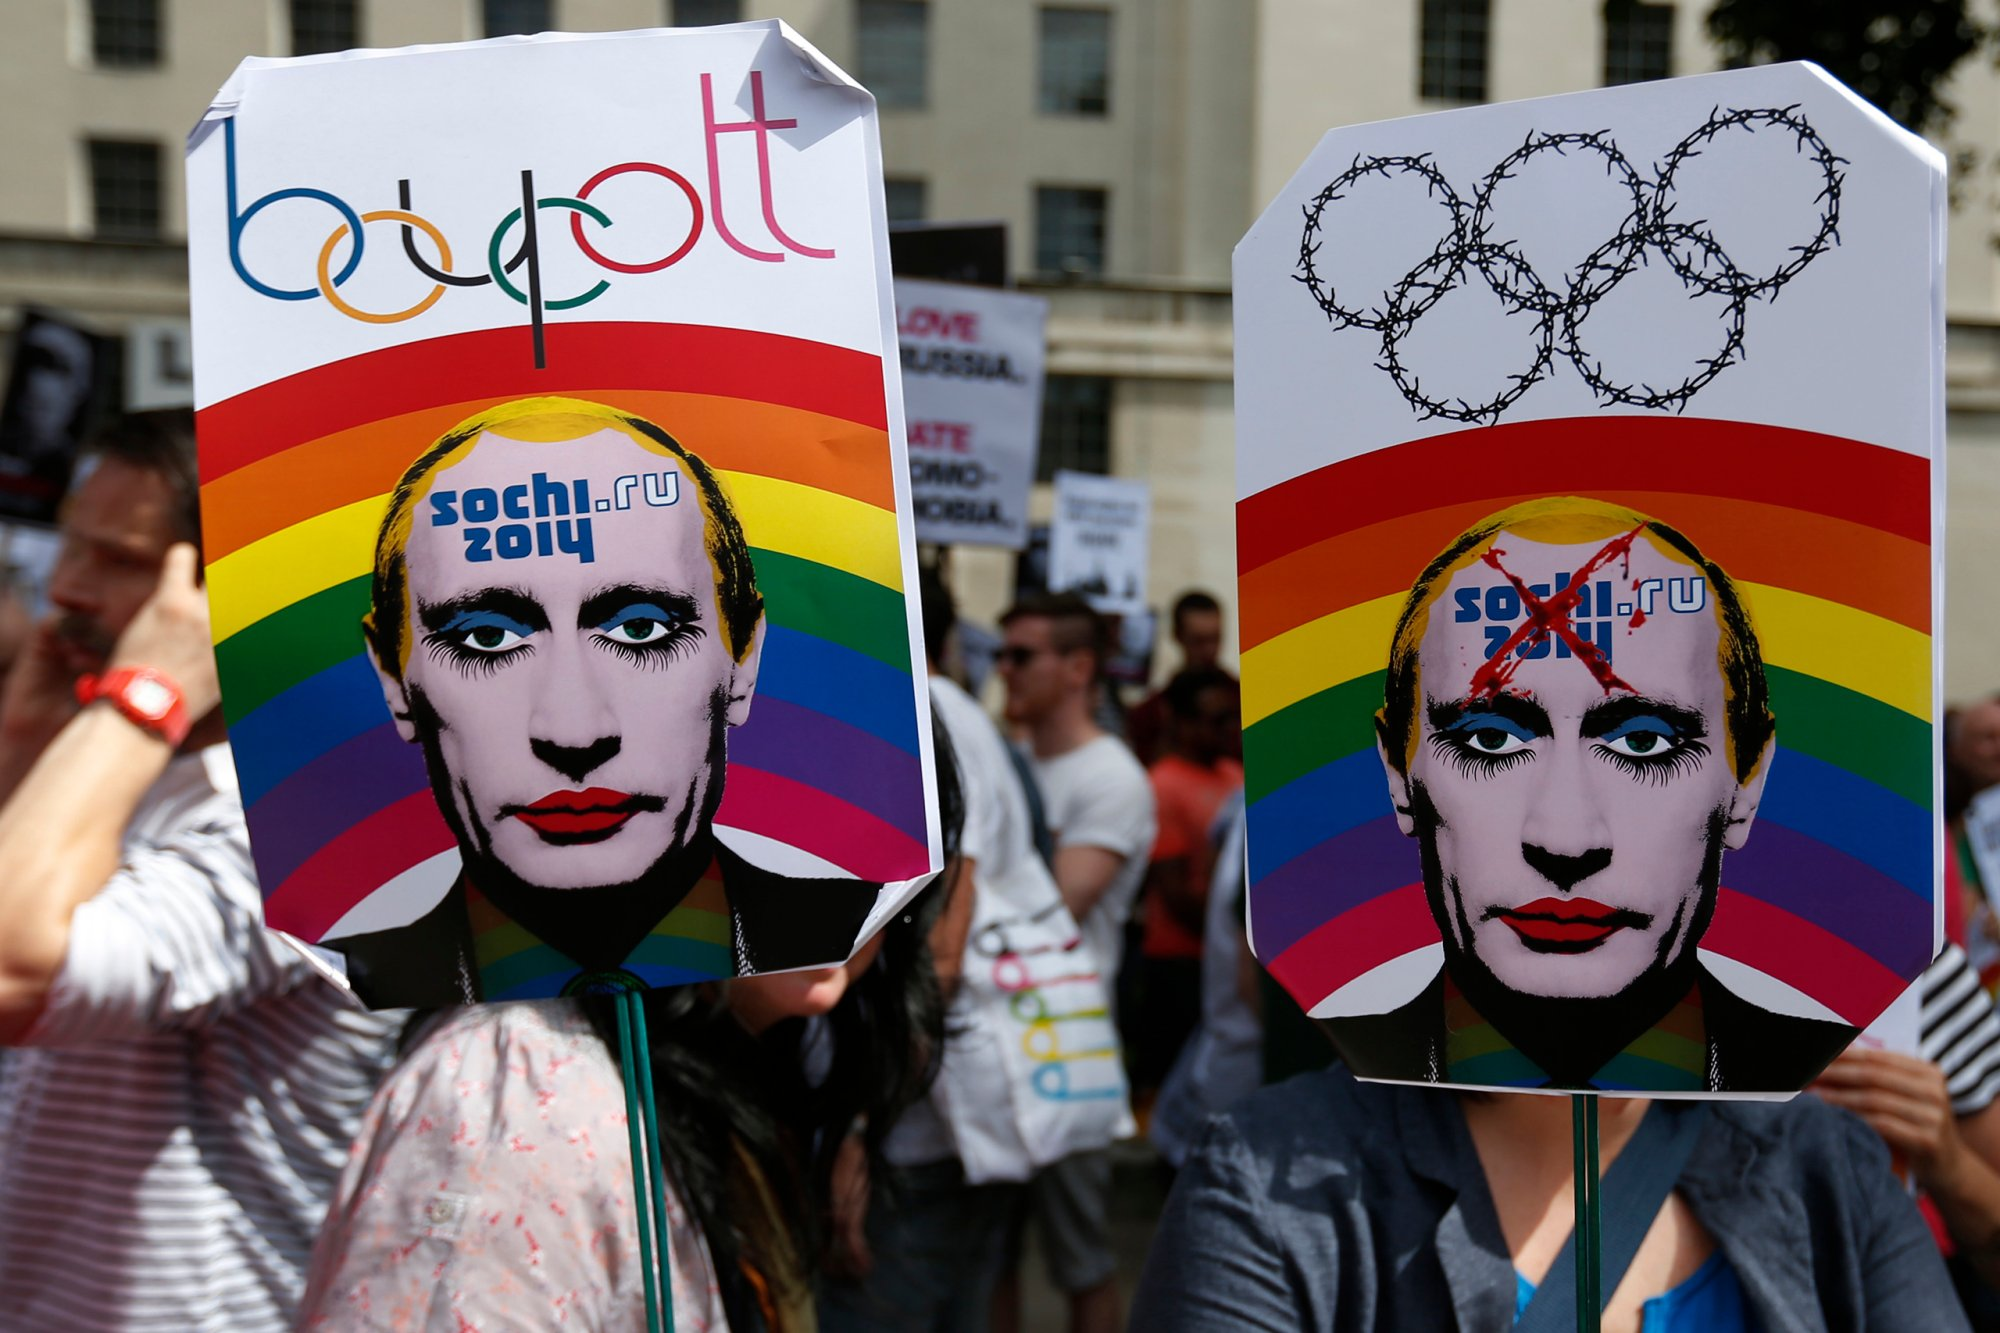 Protesters advocating a boycott of the 2014 Sochi games because of Russia's newly-passed anti-gay legislation. (Photo Credit: http://www.thedailybeast.com)